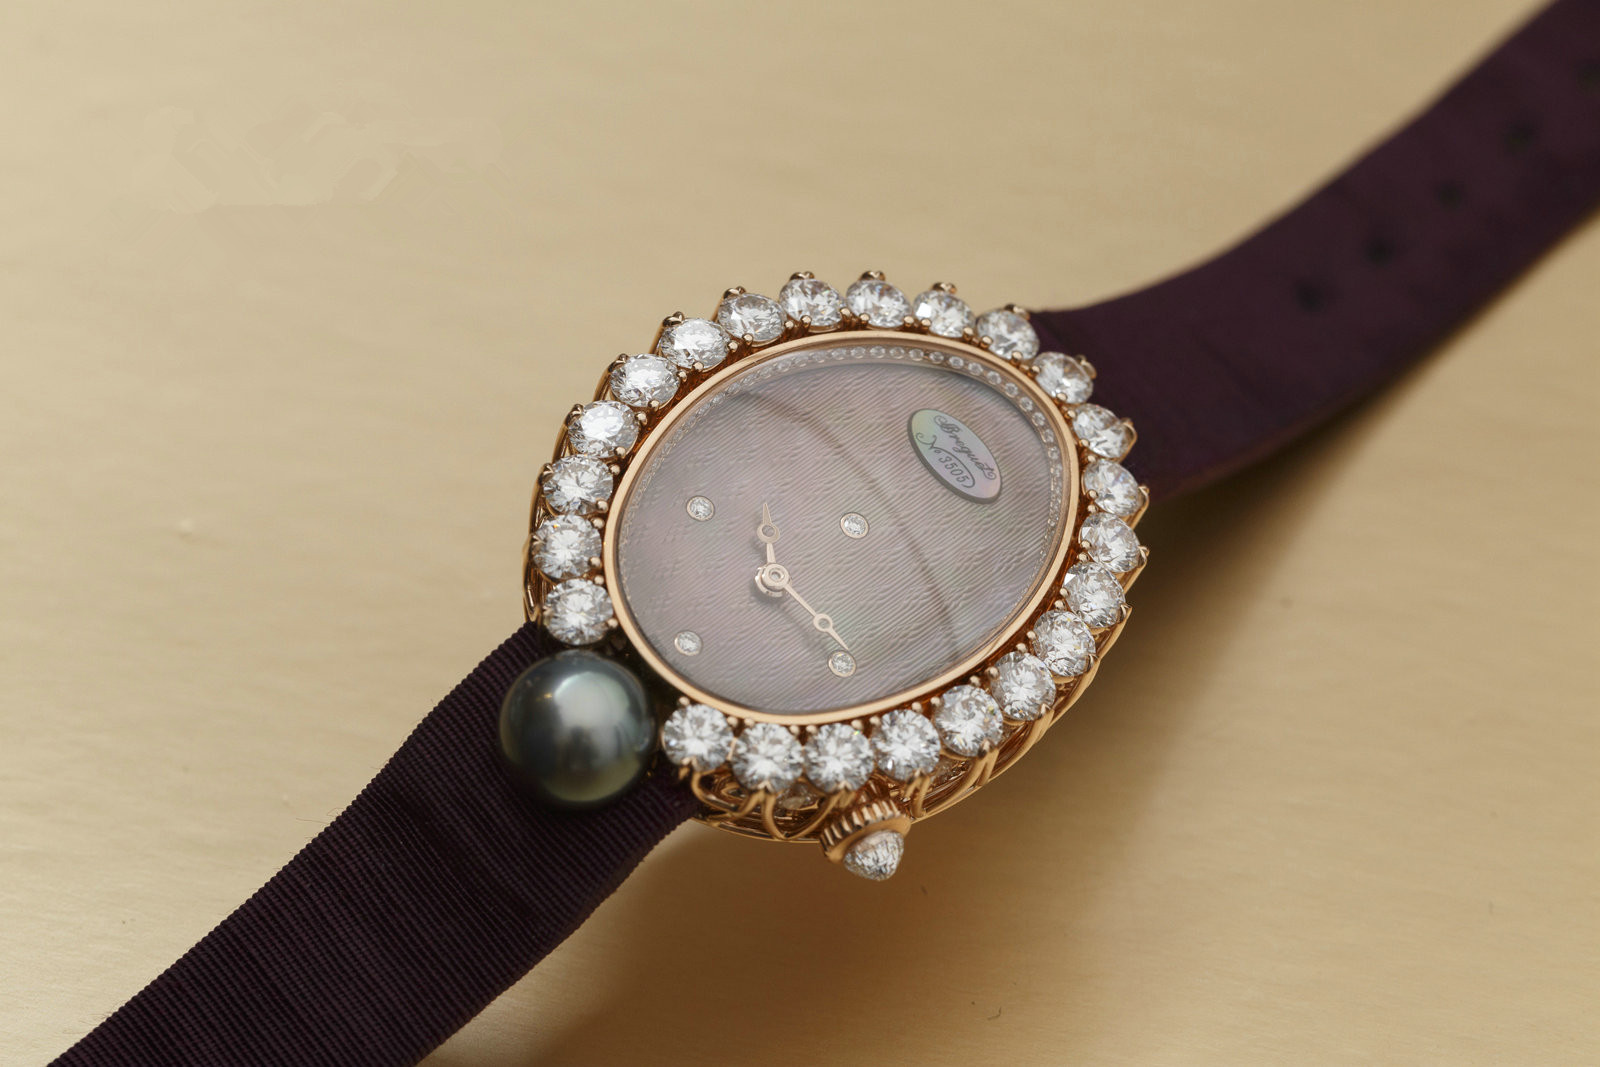 Breguet High Jewellery Replica Watches